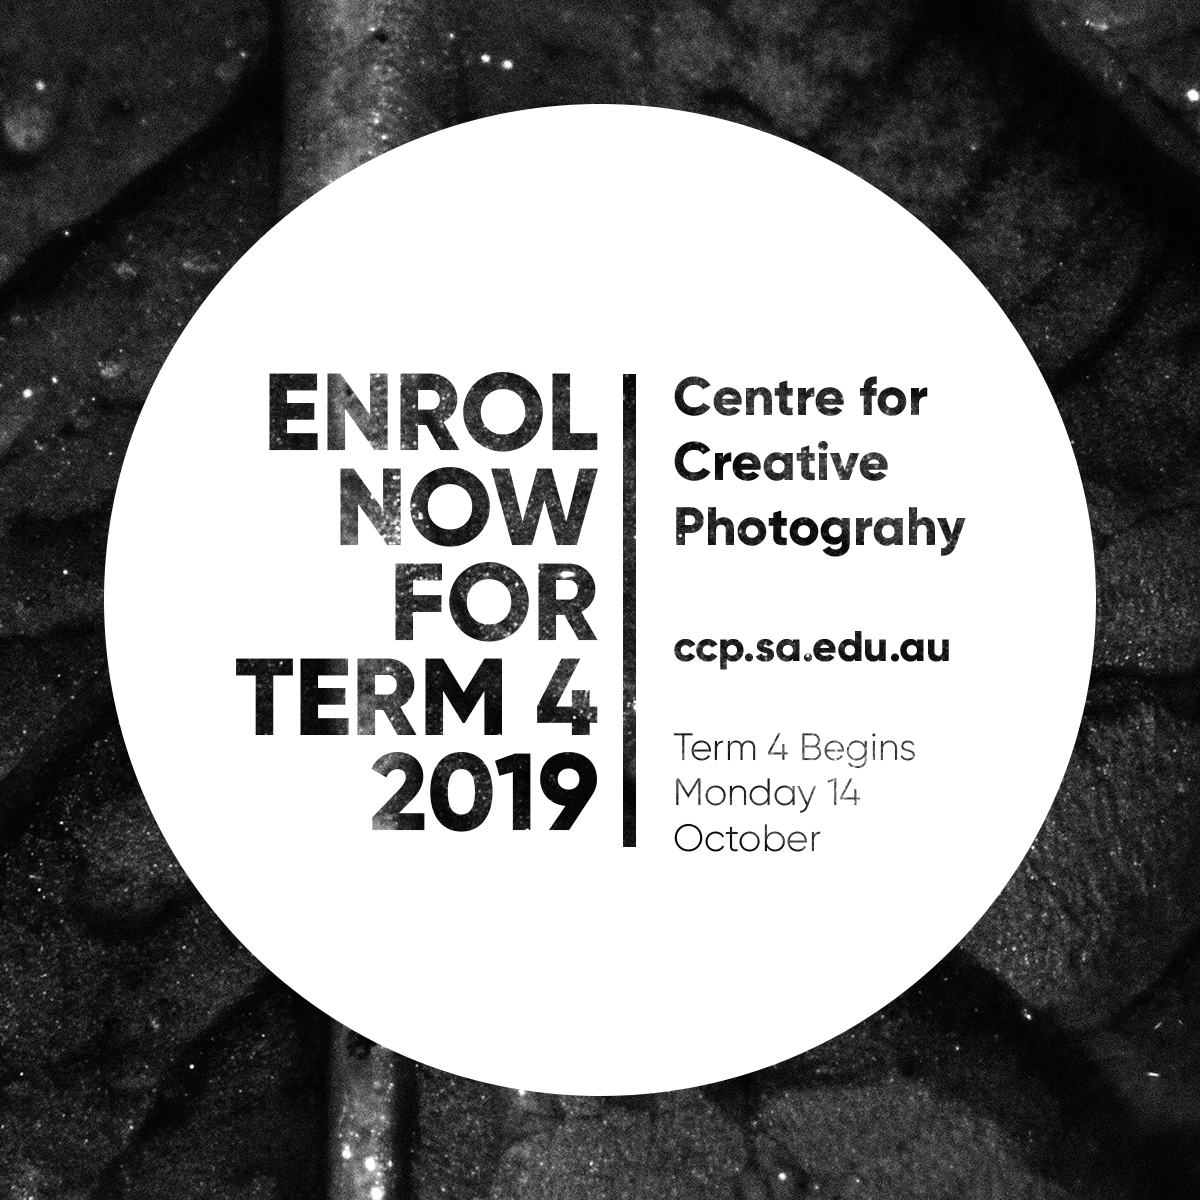 centre-for-creative-photography-enrol-for-term-4